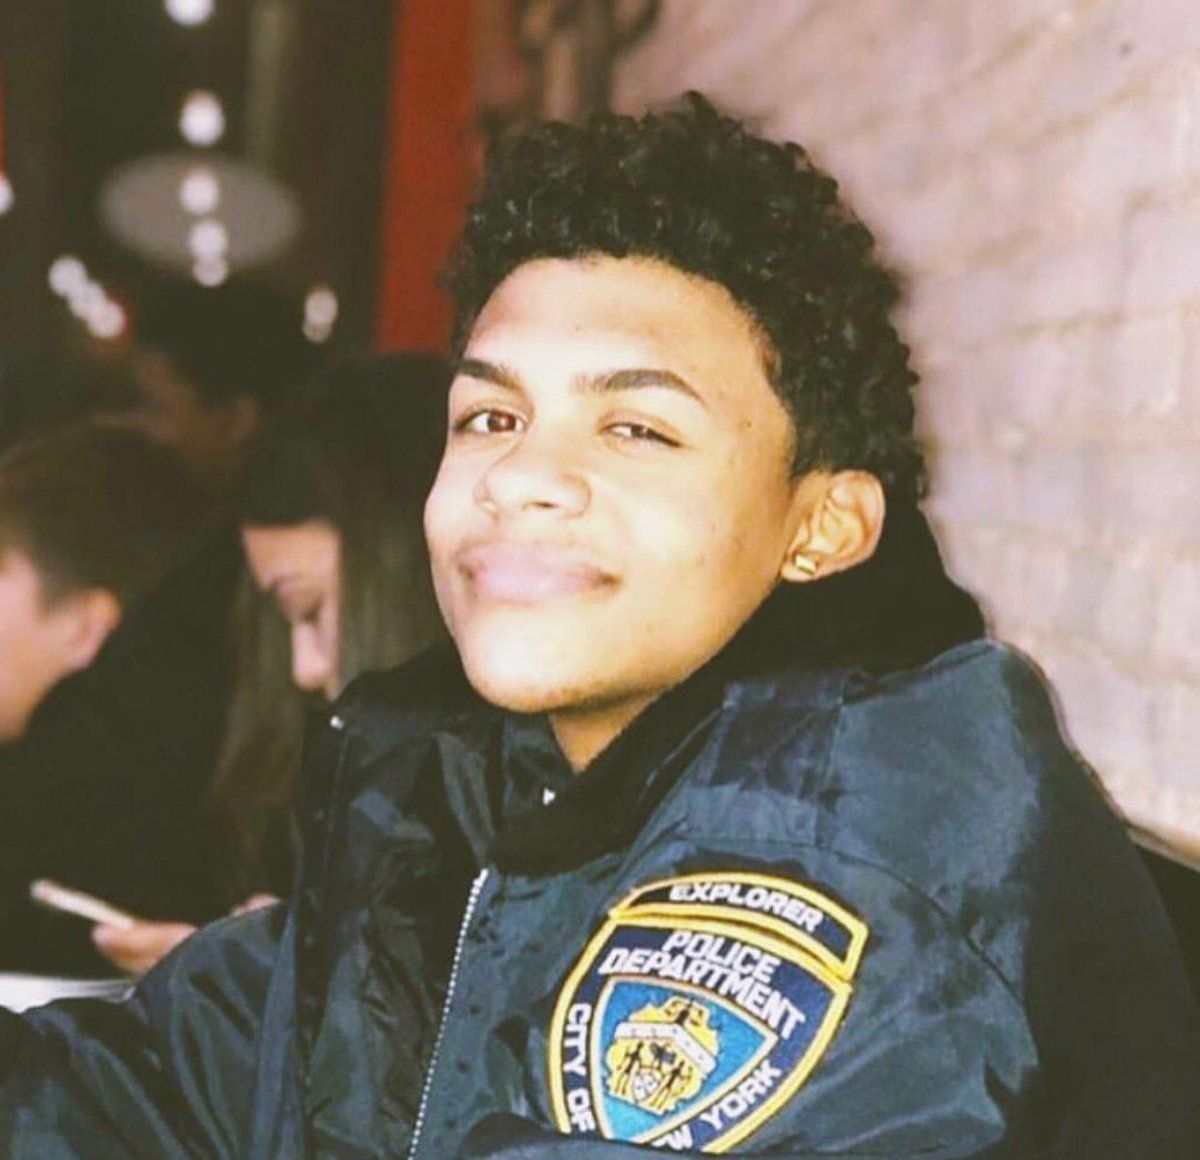 """Lesandro""""Junior"""" Guzman-Feliz, 15, was fatally stabbed on a sidewalk in New York City.He aspired to be a police officer one day, his family said."""